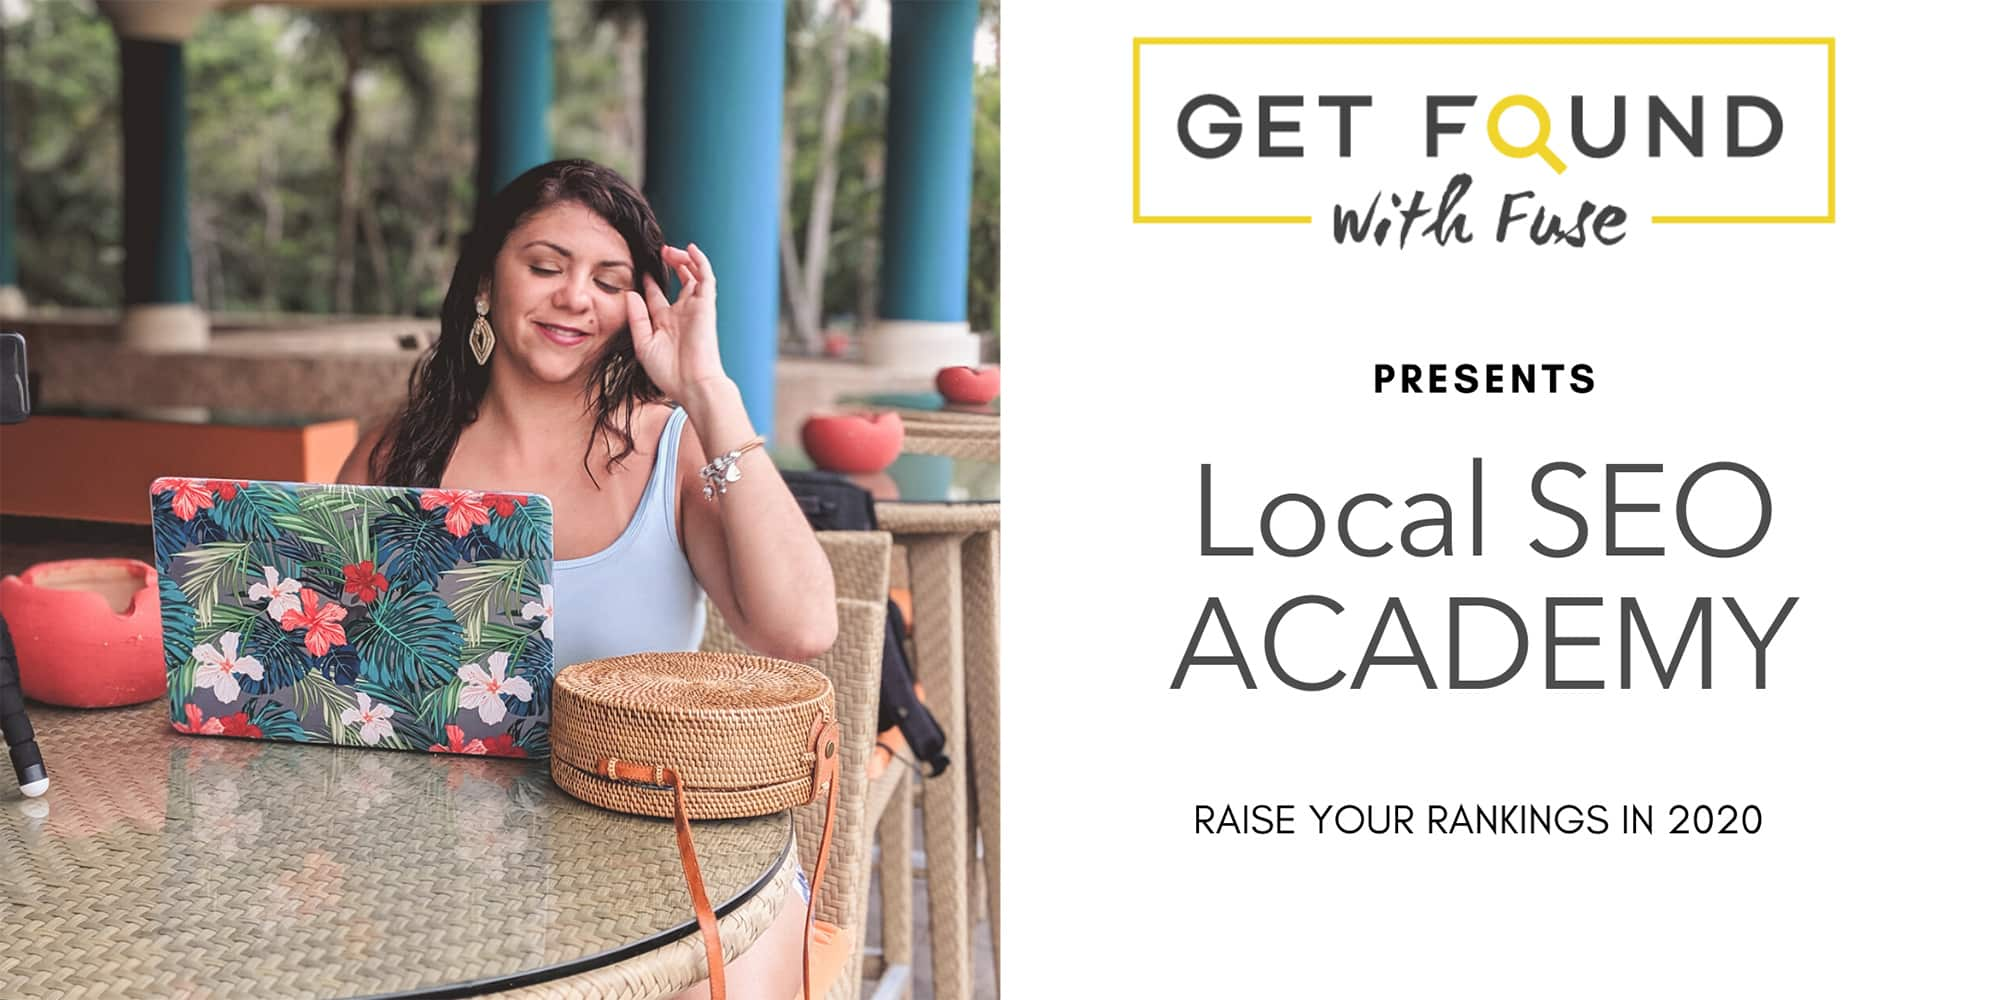 Found with Fuse - Local SEO Academy